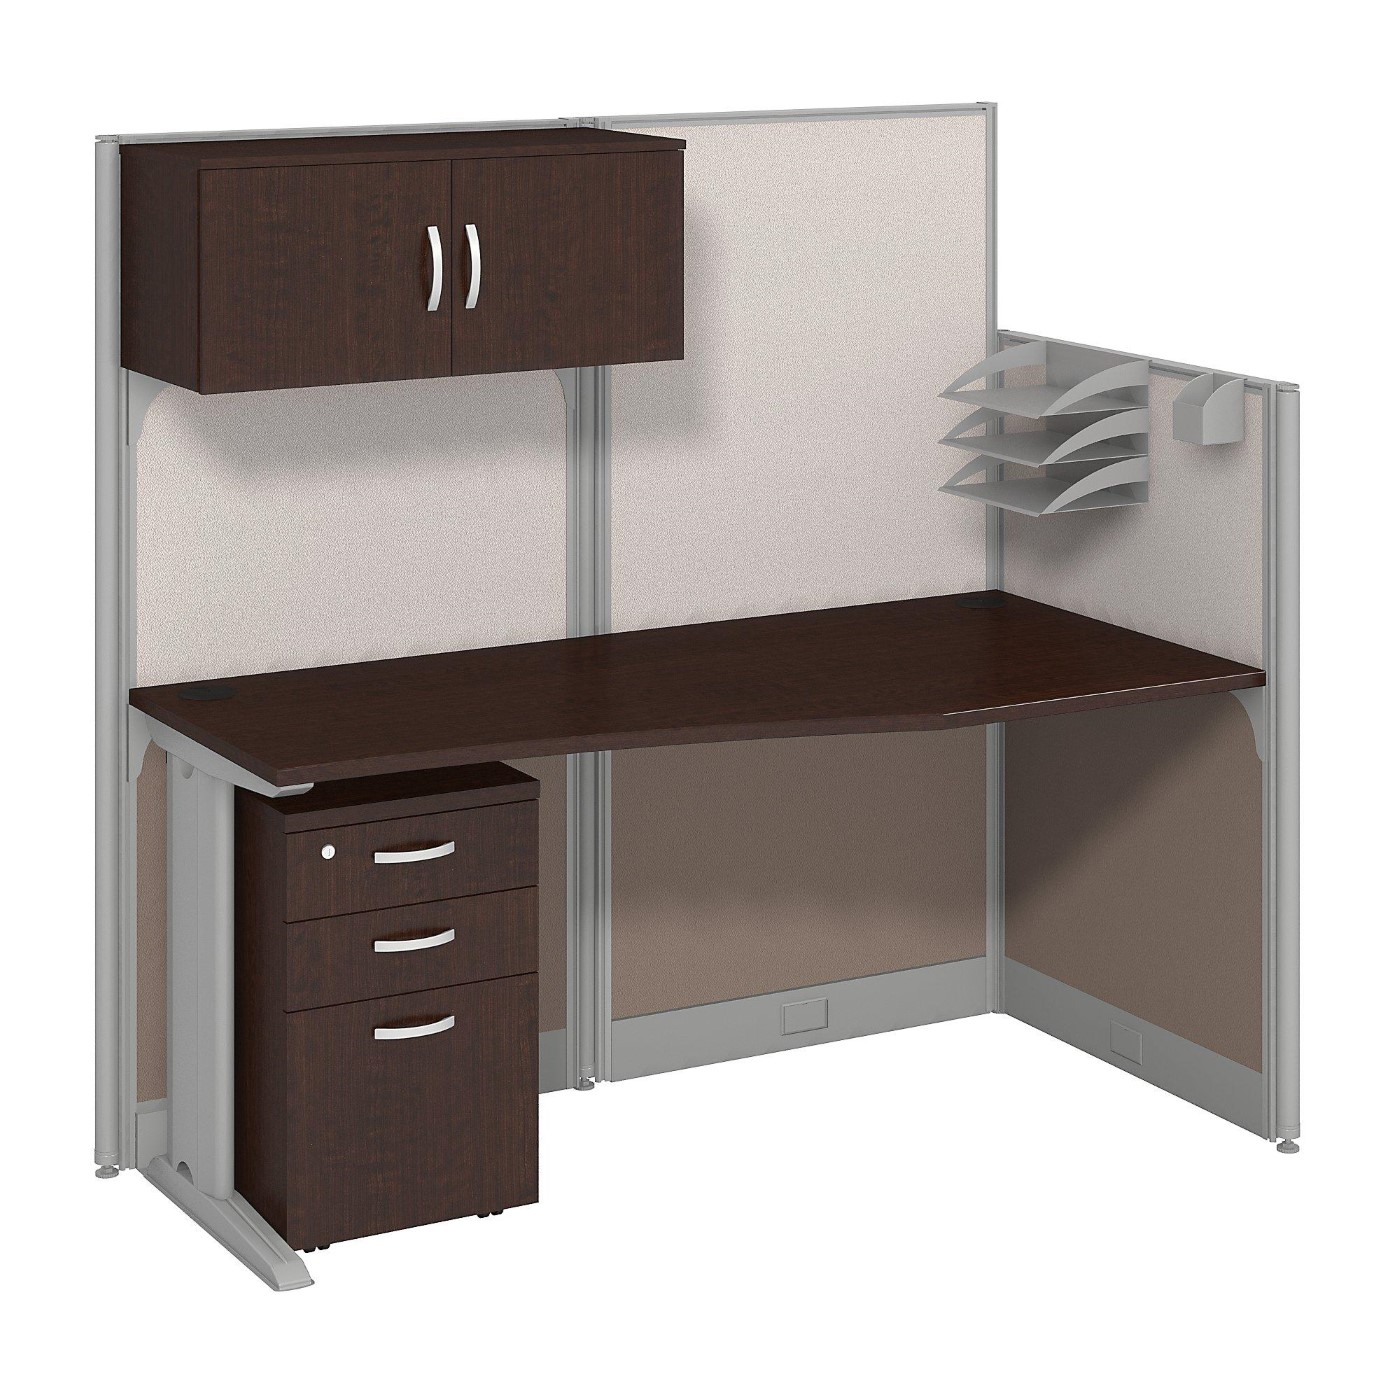 <font color=#c60><b>BUSH BUSINESS FURNITURE OFFICE IN AN HOUR 65W X 33D CUBICLE WORKSTATION WITH STORAGE. FREE SHIPPING</font></b>